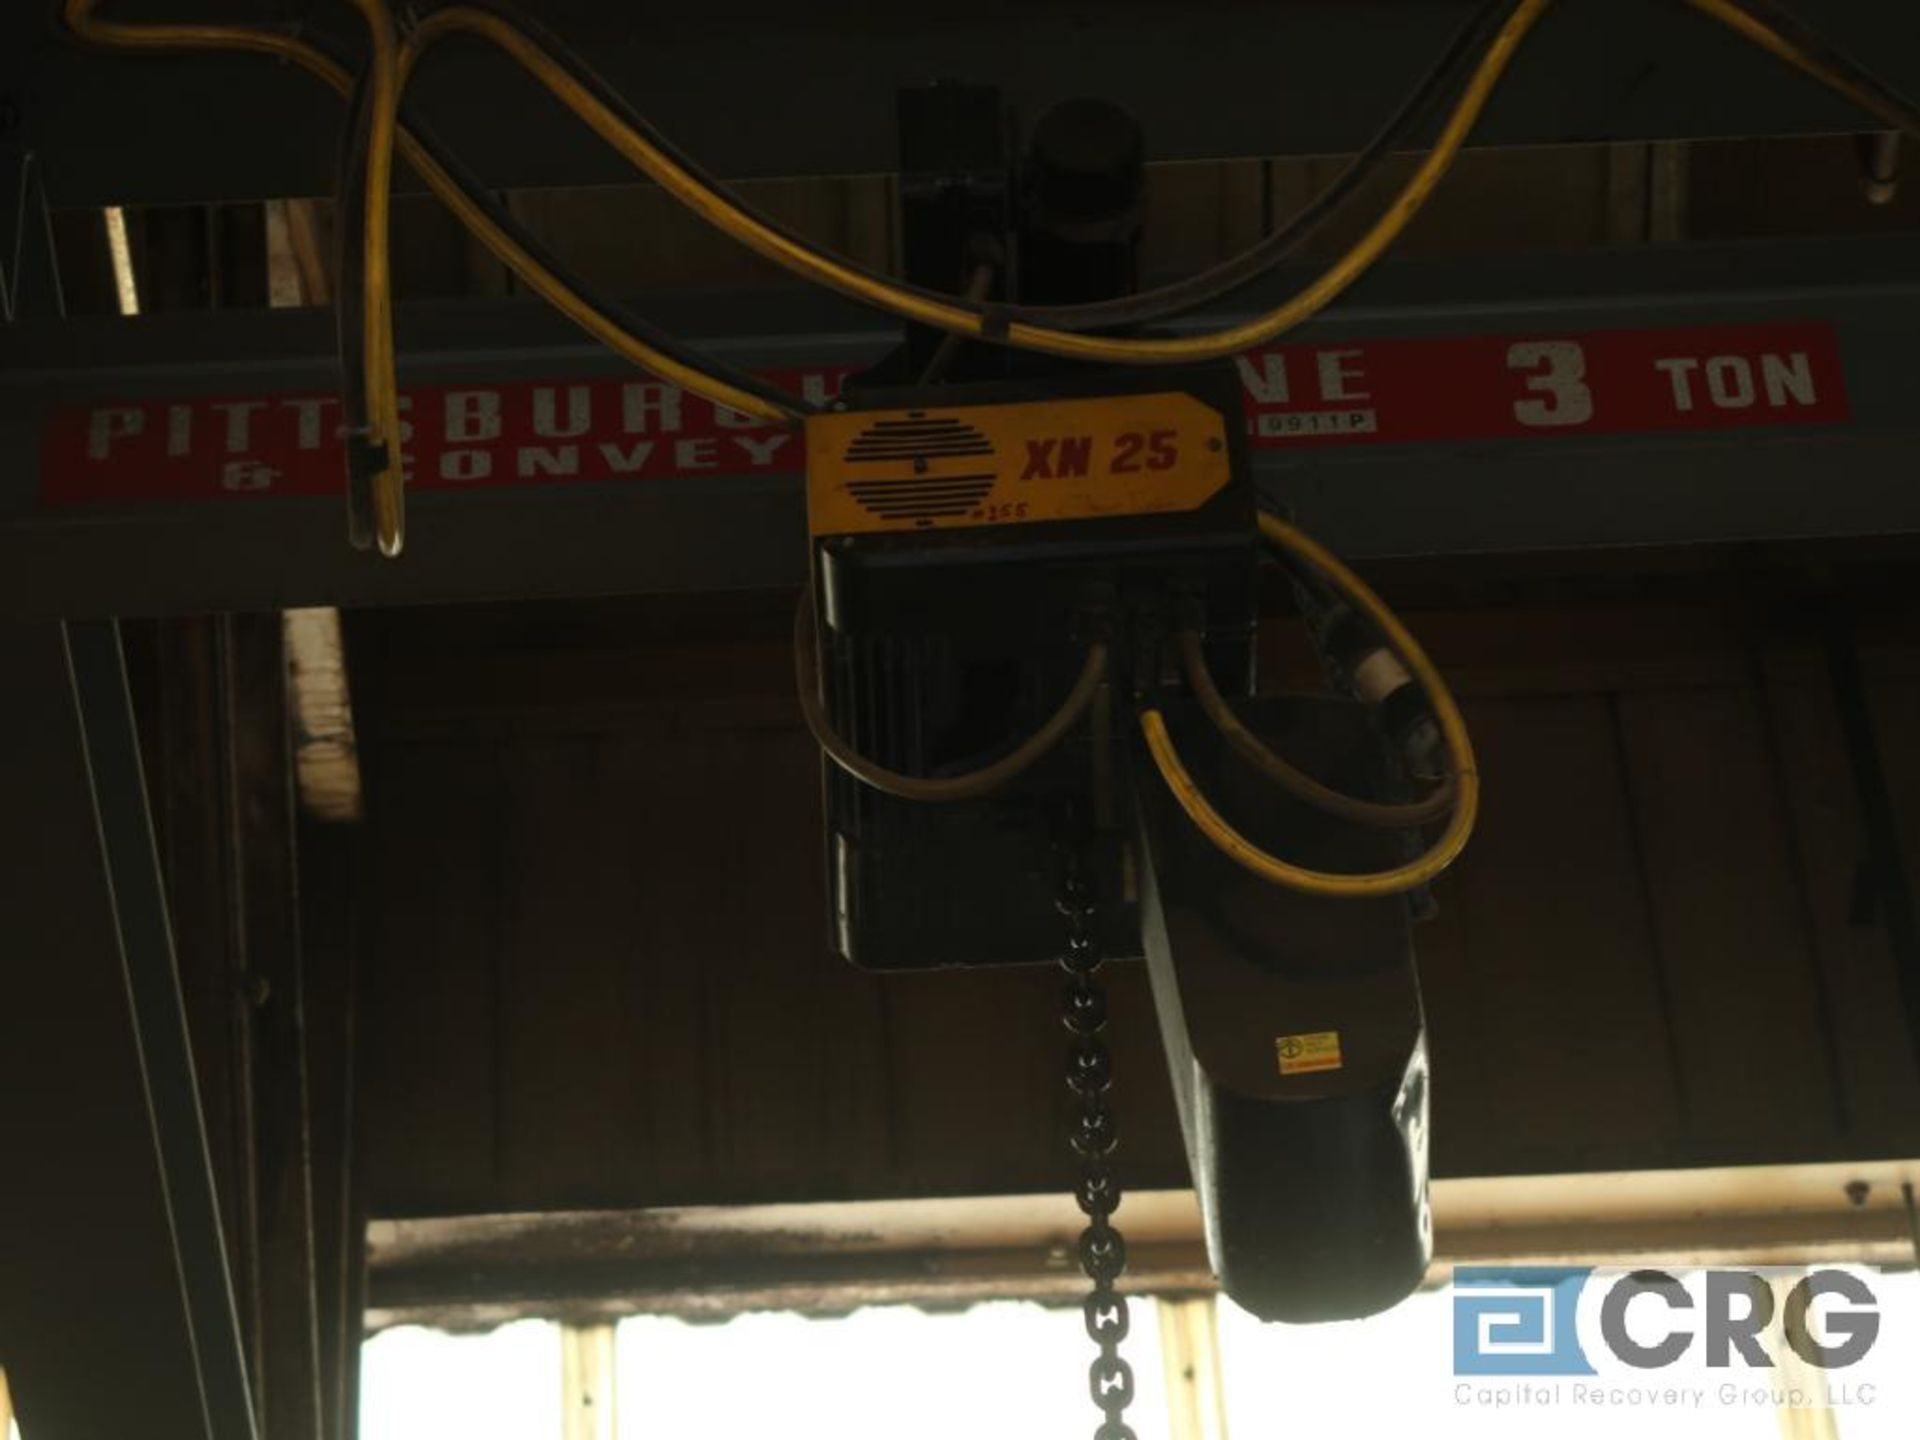 Konecranes XN25 electric hoist, 3 ton cap., hoist only, no beam-LATE DELIVERY (Located on Level - Image 10 of 12